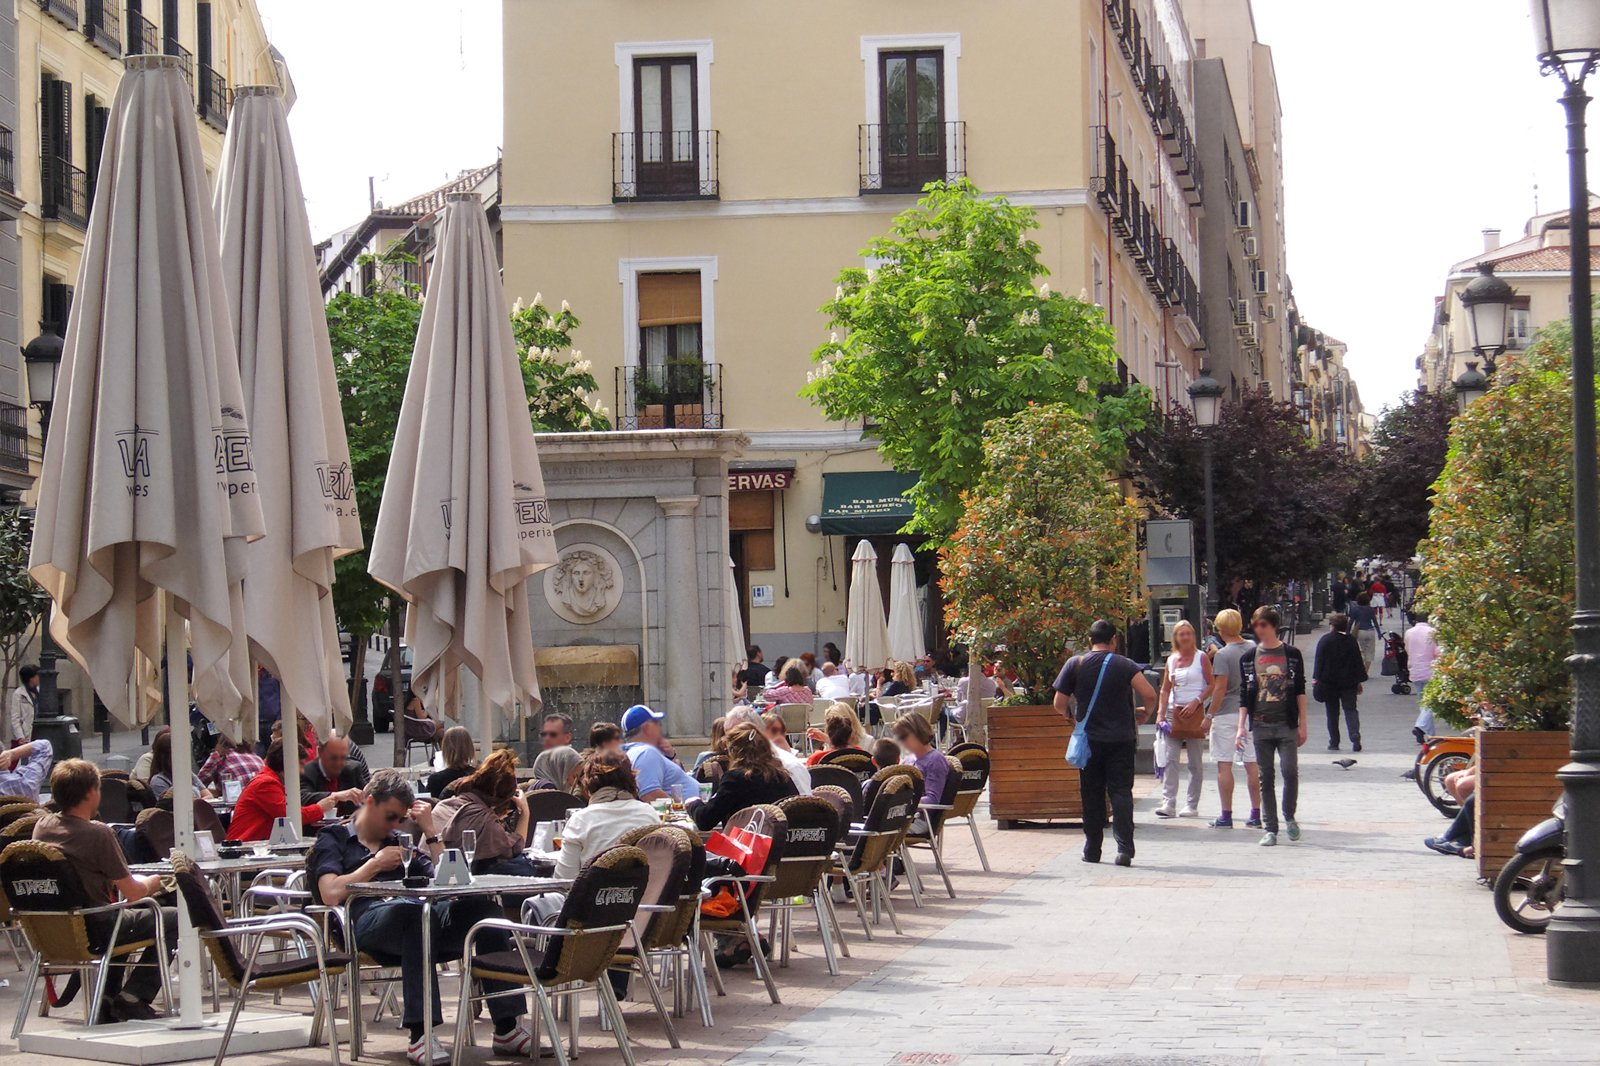 Where to Stay in Madrid? - A Travel Guide to Madrid's Neighborhoods